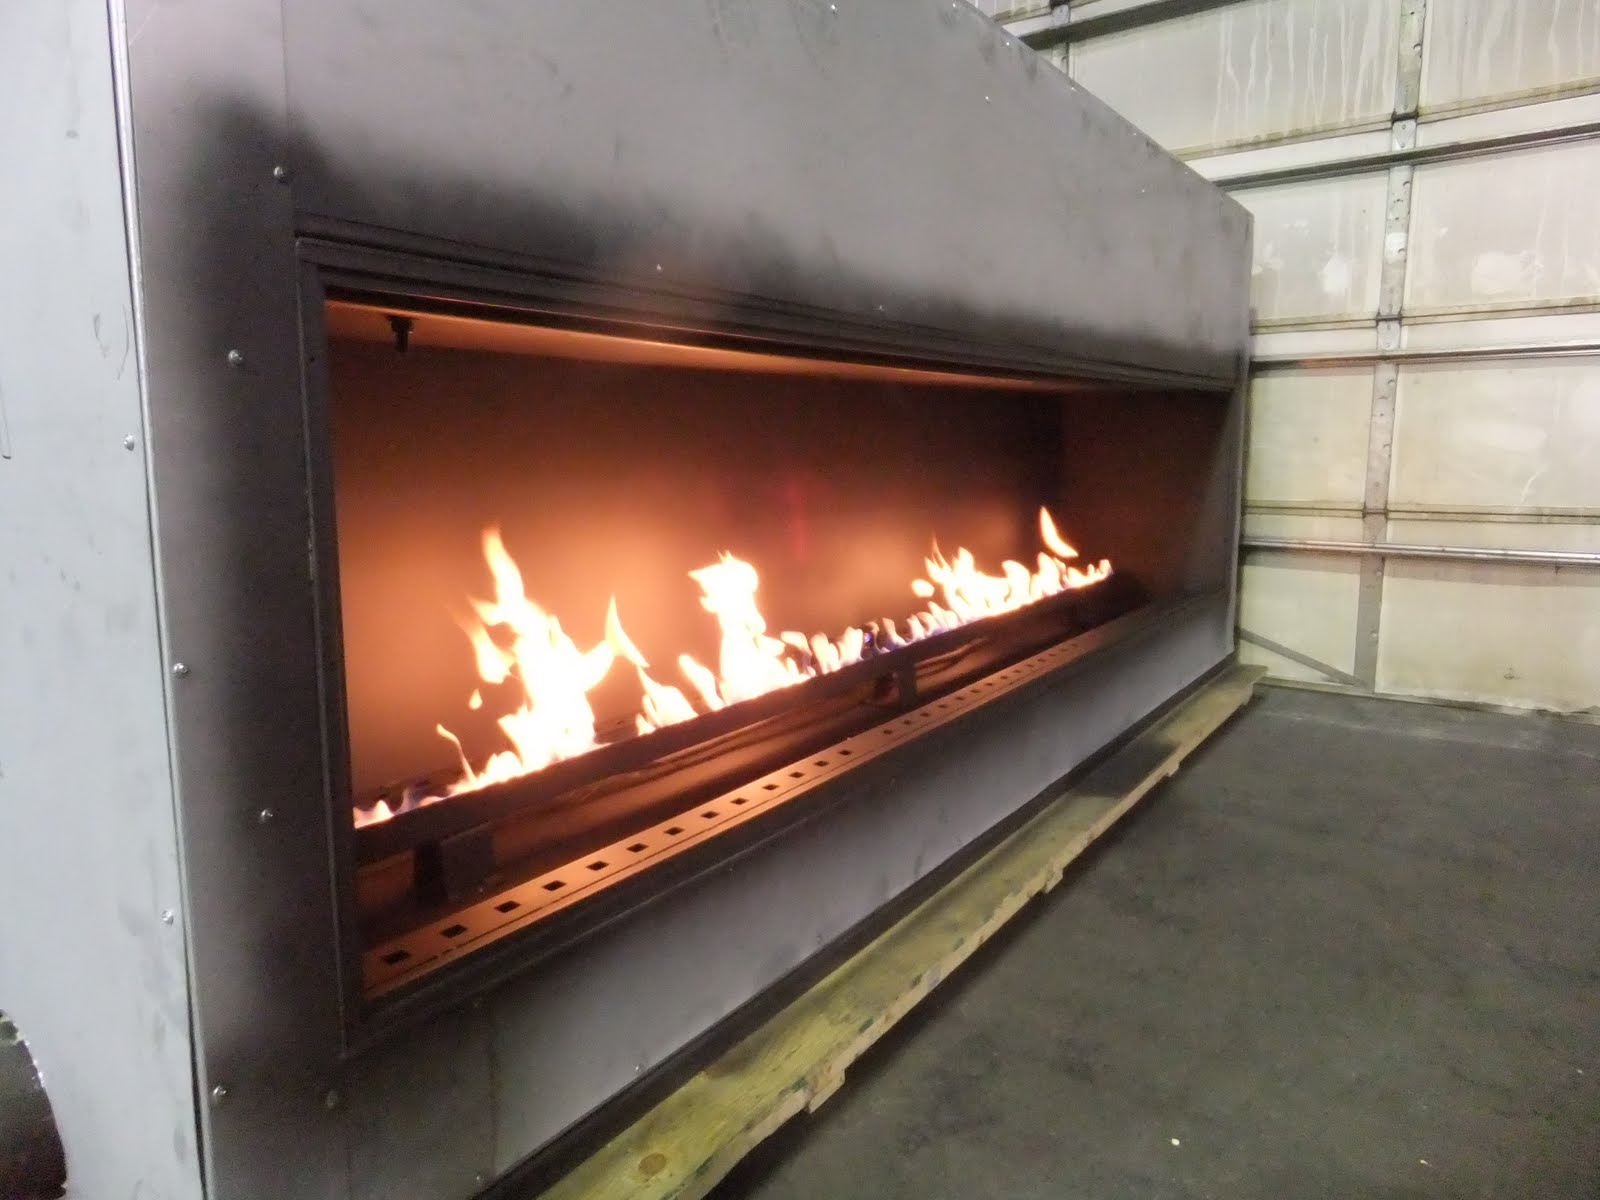 BURNER PANS AND GAS FIREPLACES  Fireplaces